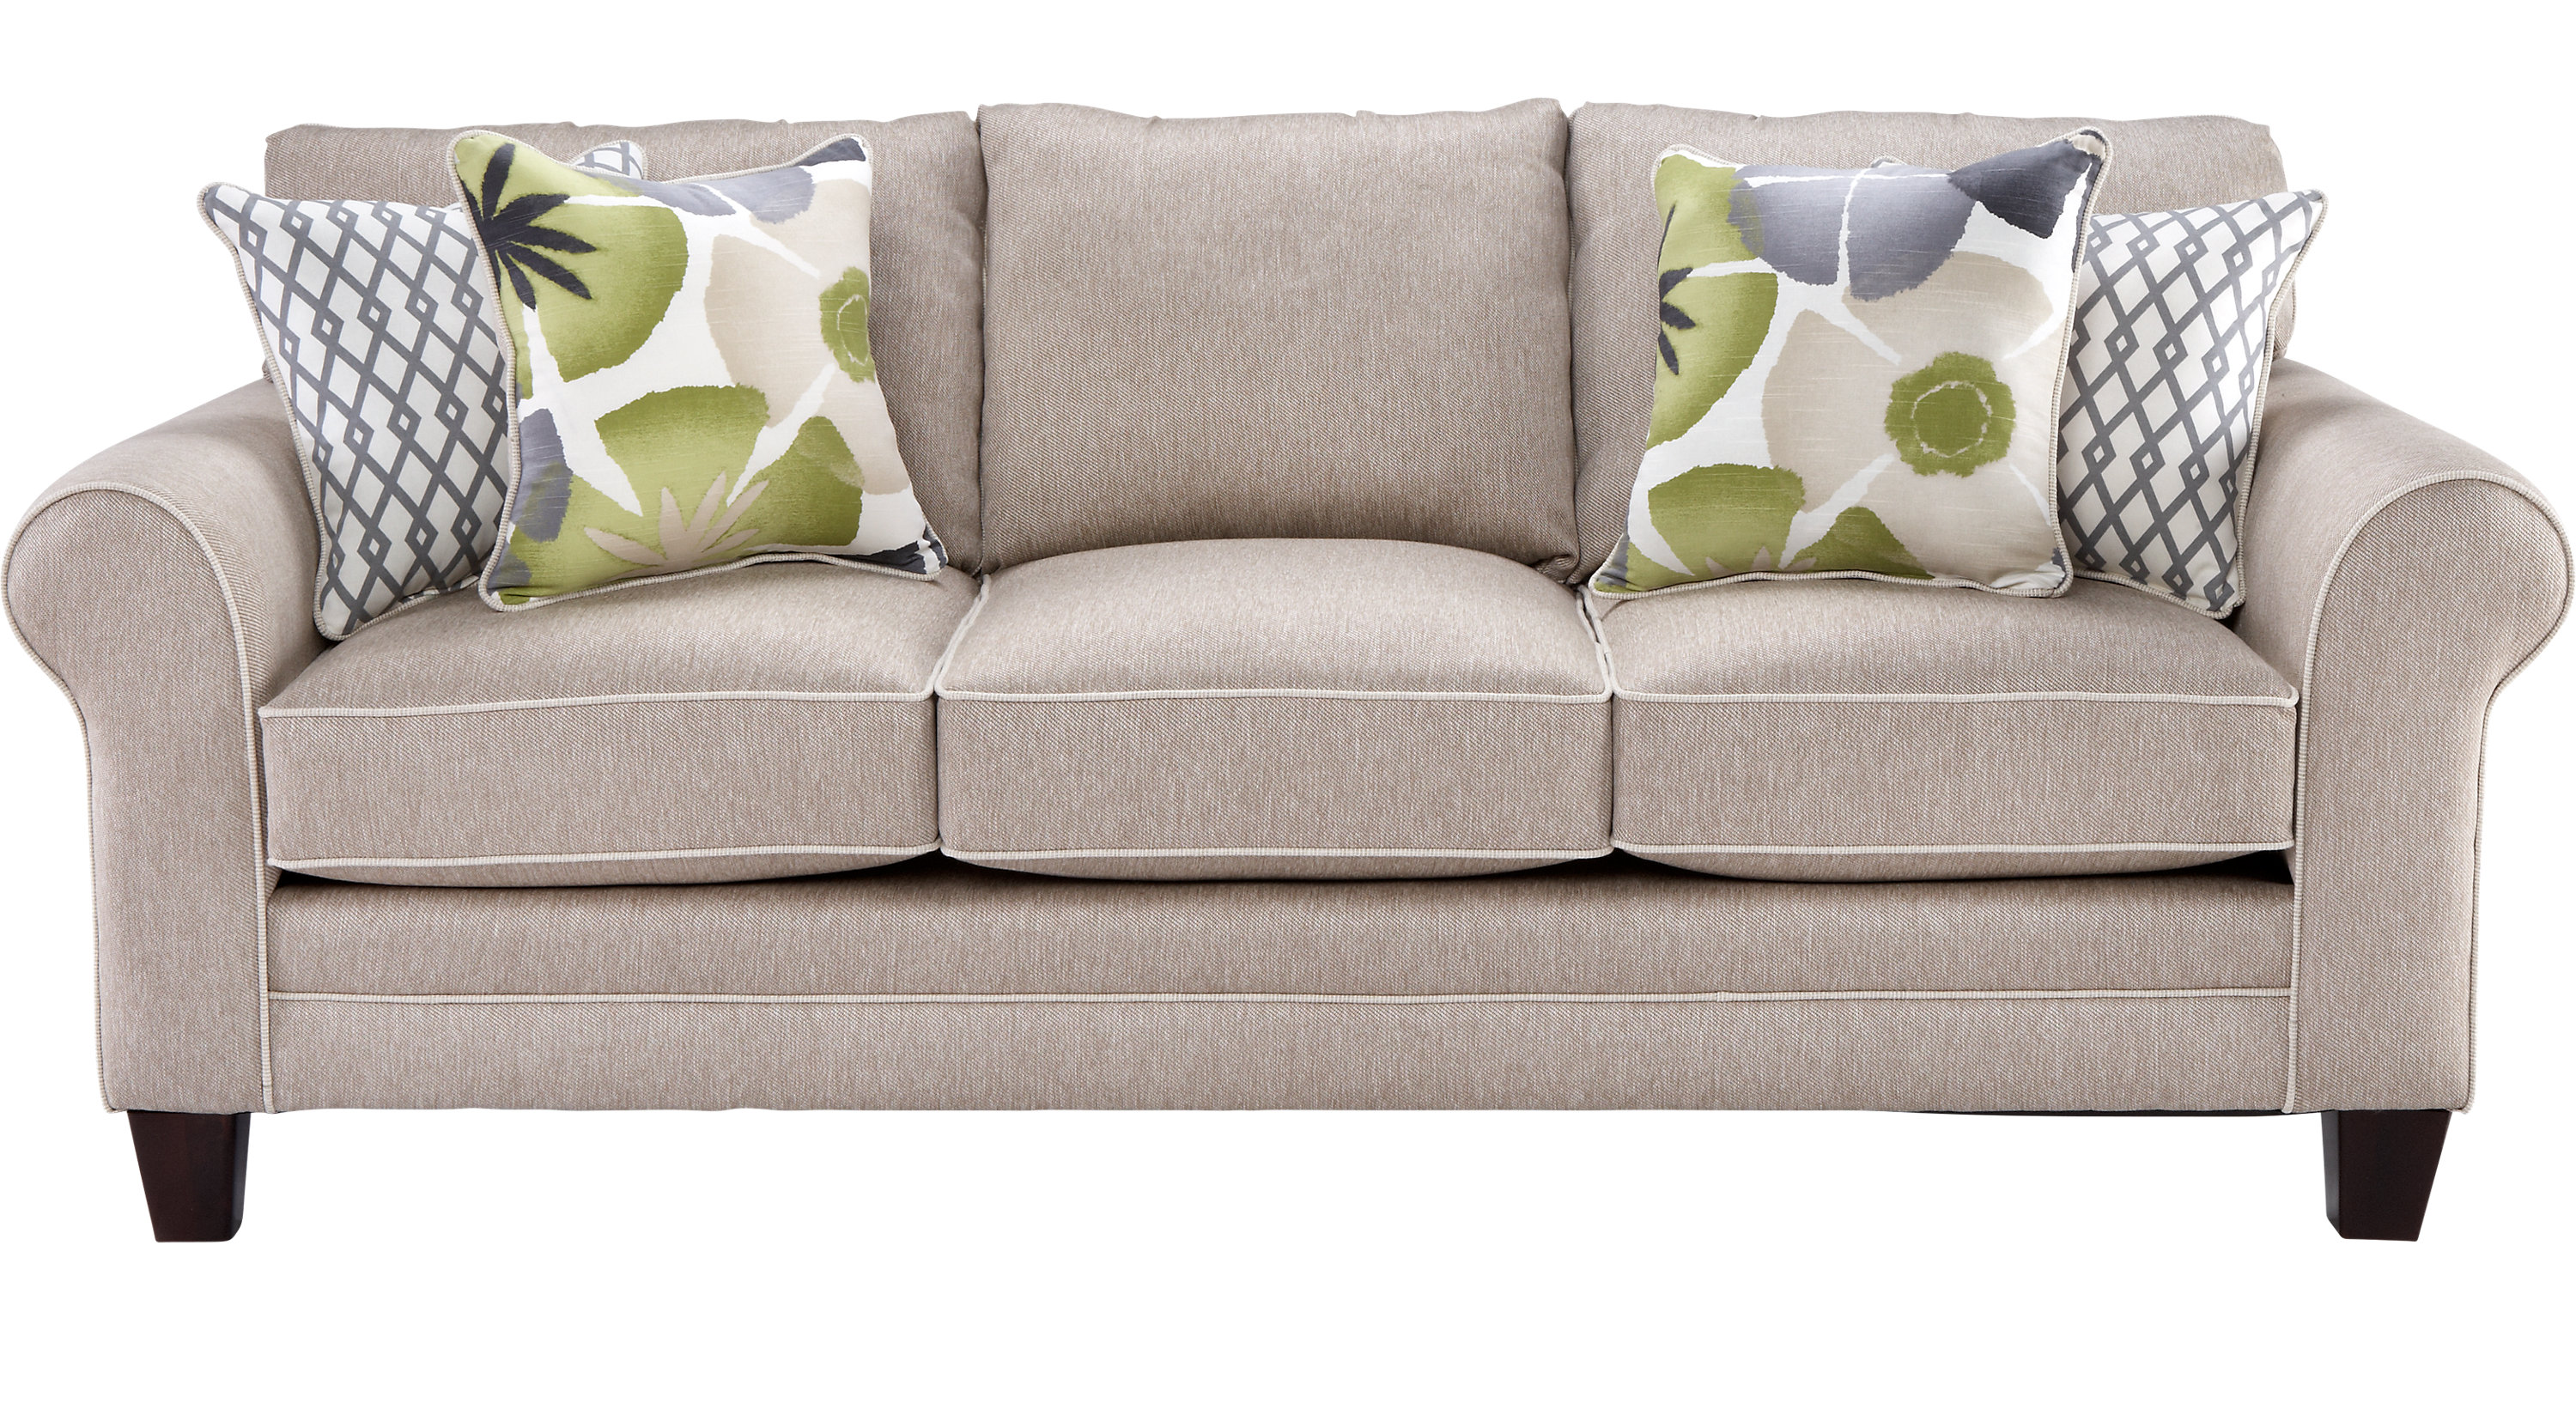 Lilith pond taupe grayish brown sofa classic for Classic taupe living room